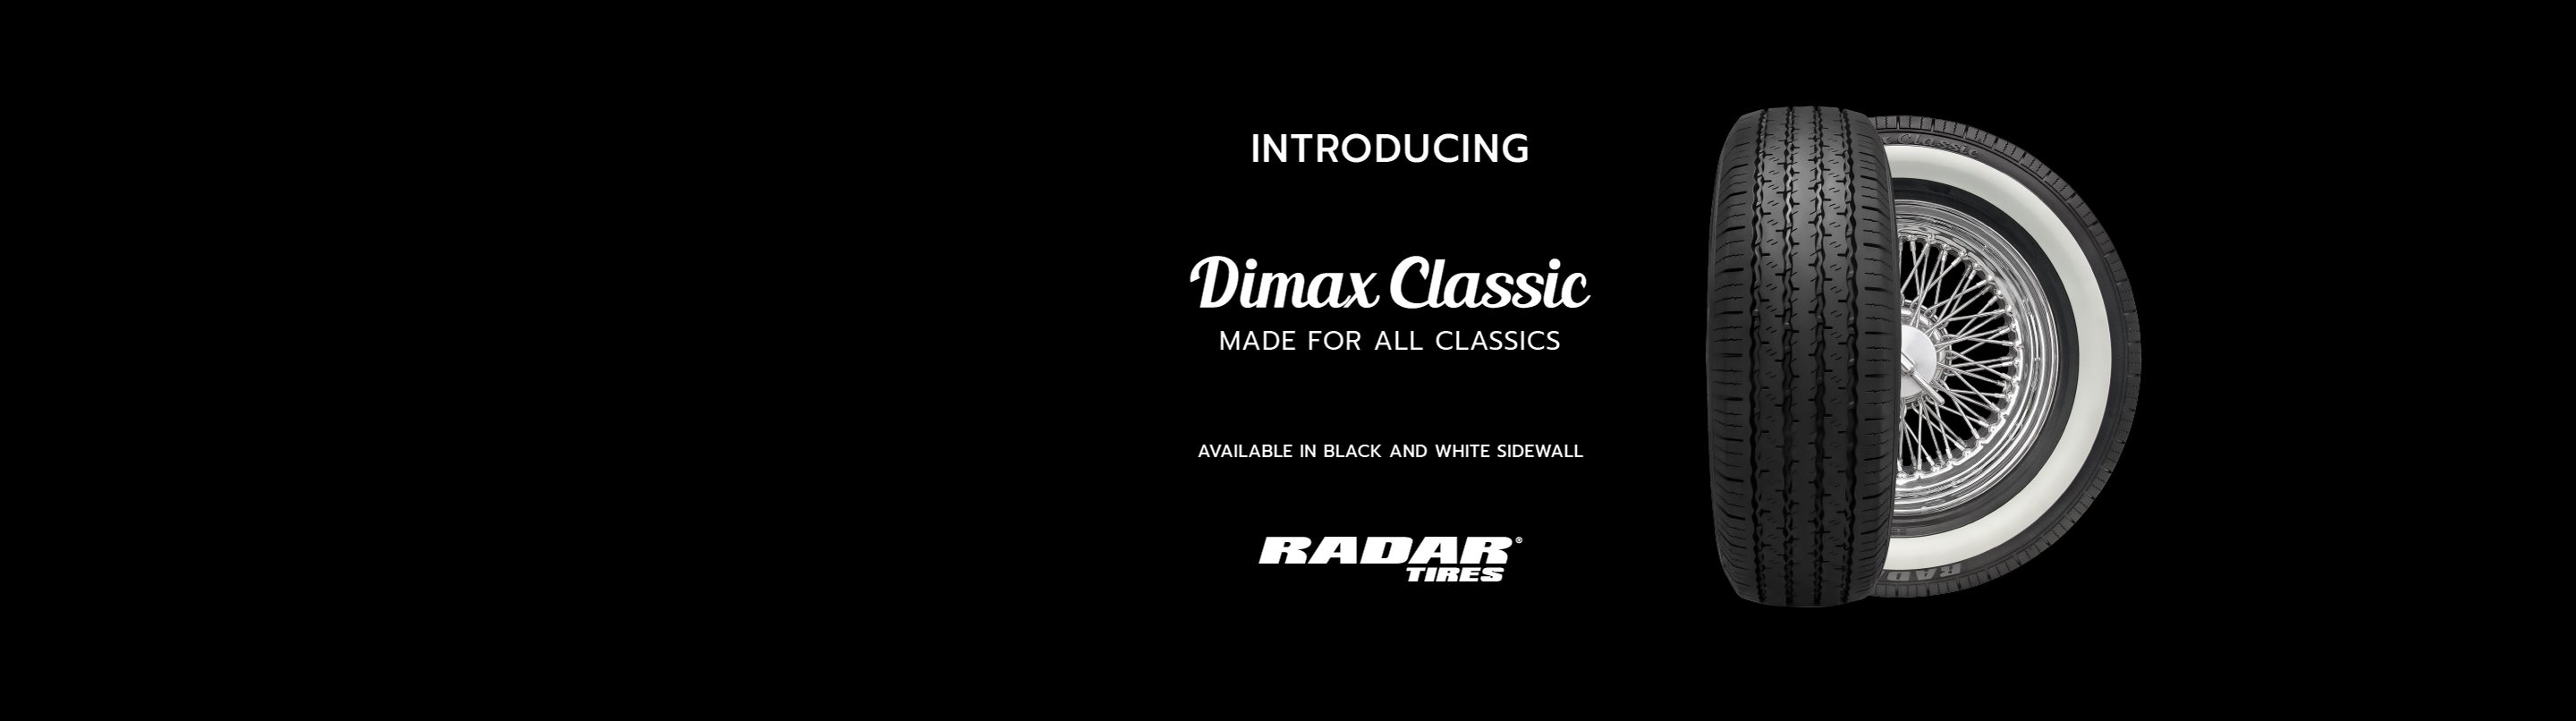 Introducing Dimax Classic by Radar Tires